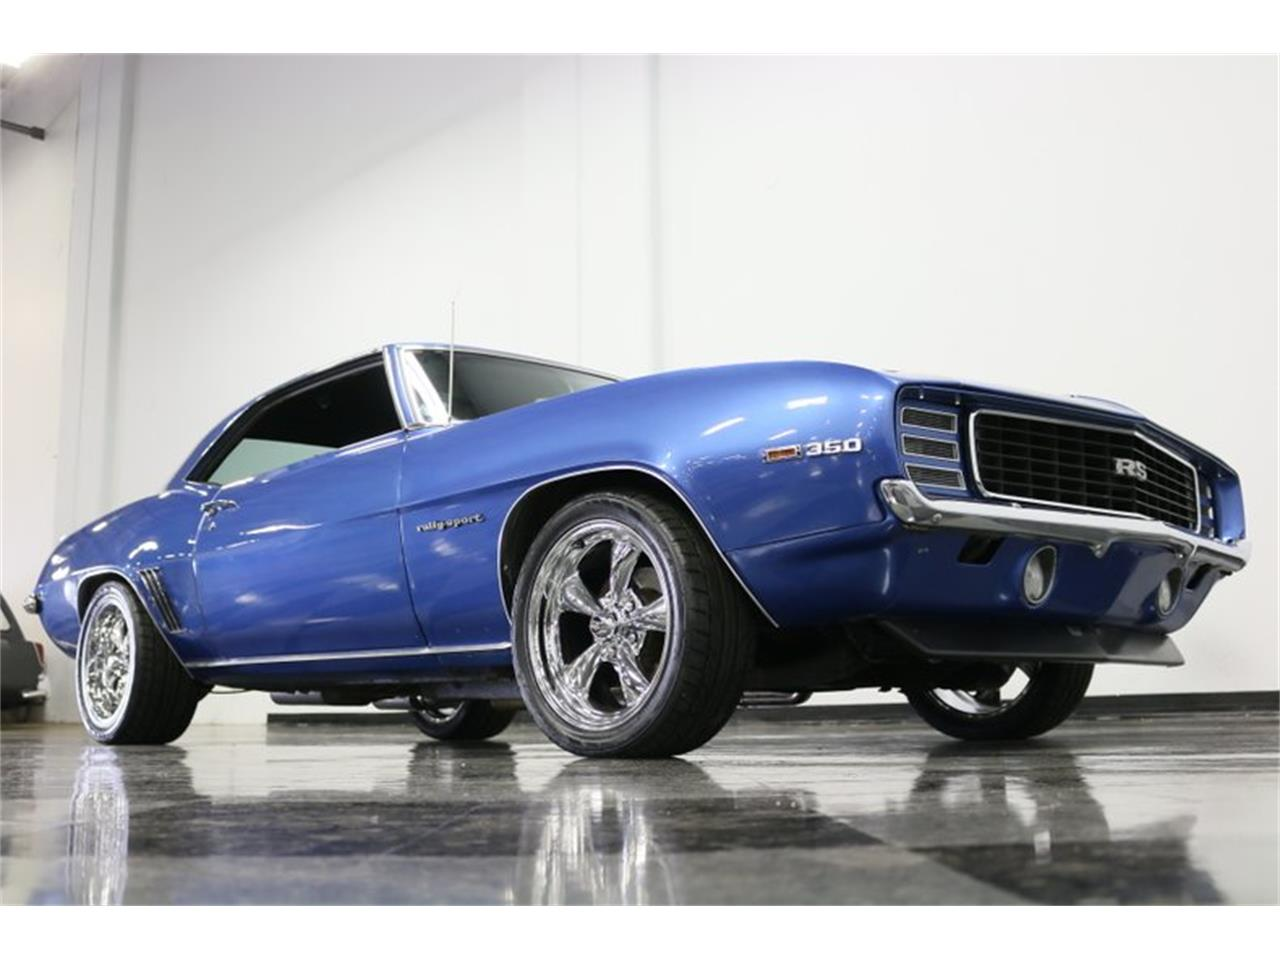 For Sale: 1969 Chevrolet Camaro in Ft Worth, Texas